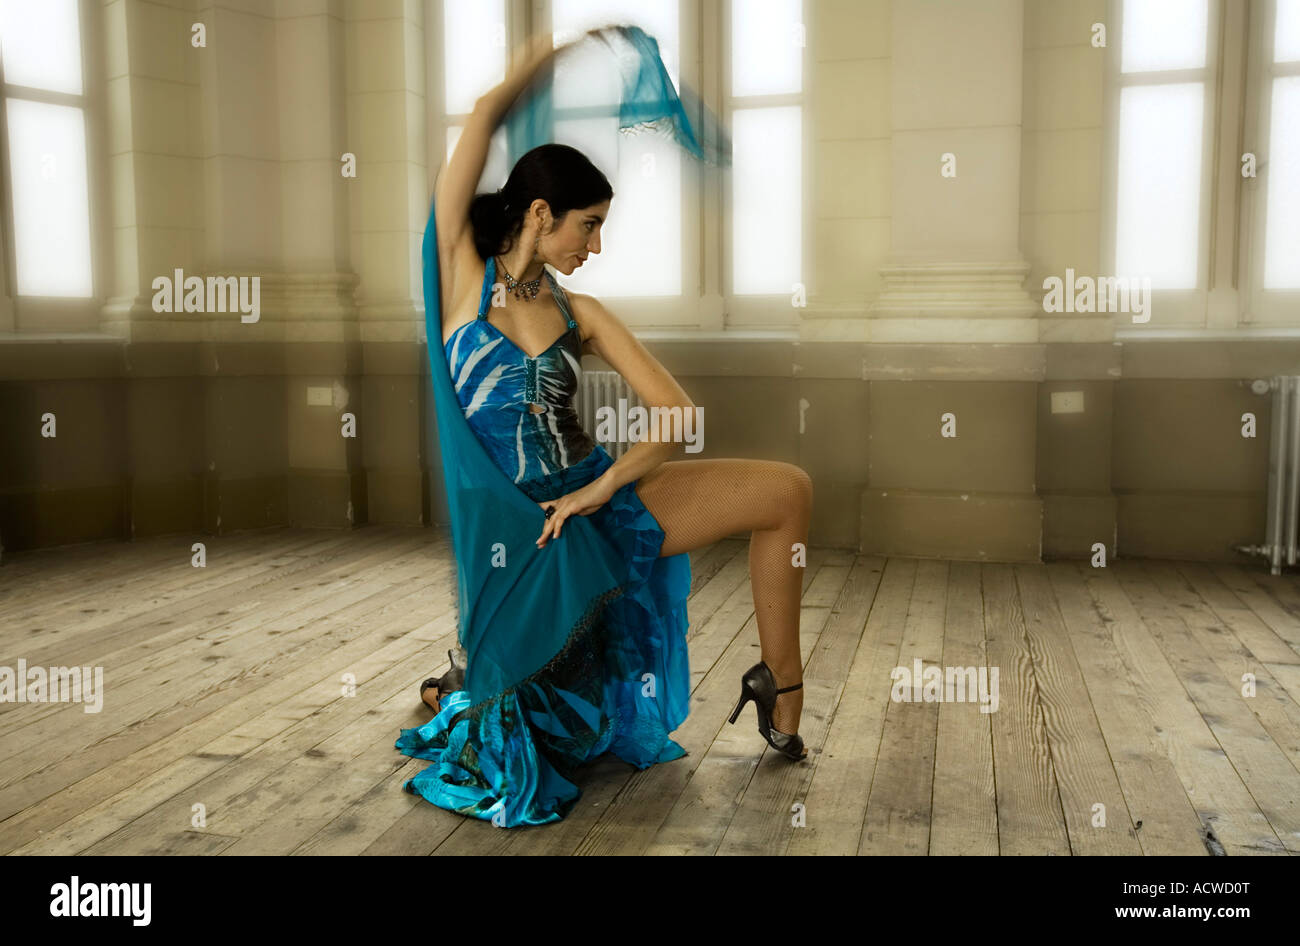 A woman dancer in a Blue dress in an old fashion dance hall Stock Photo